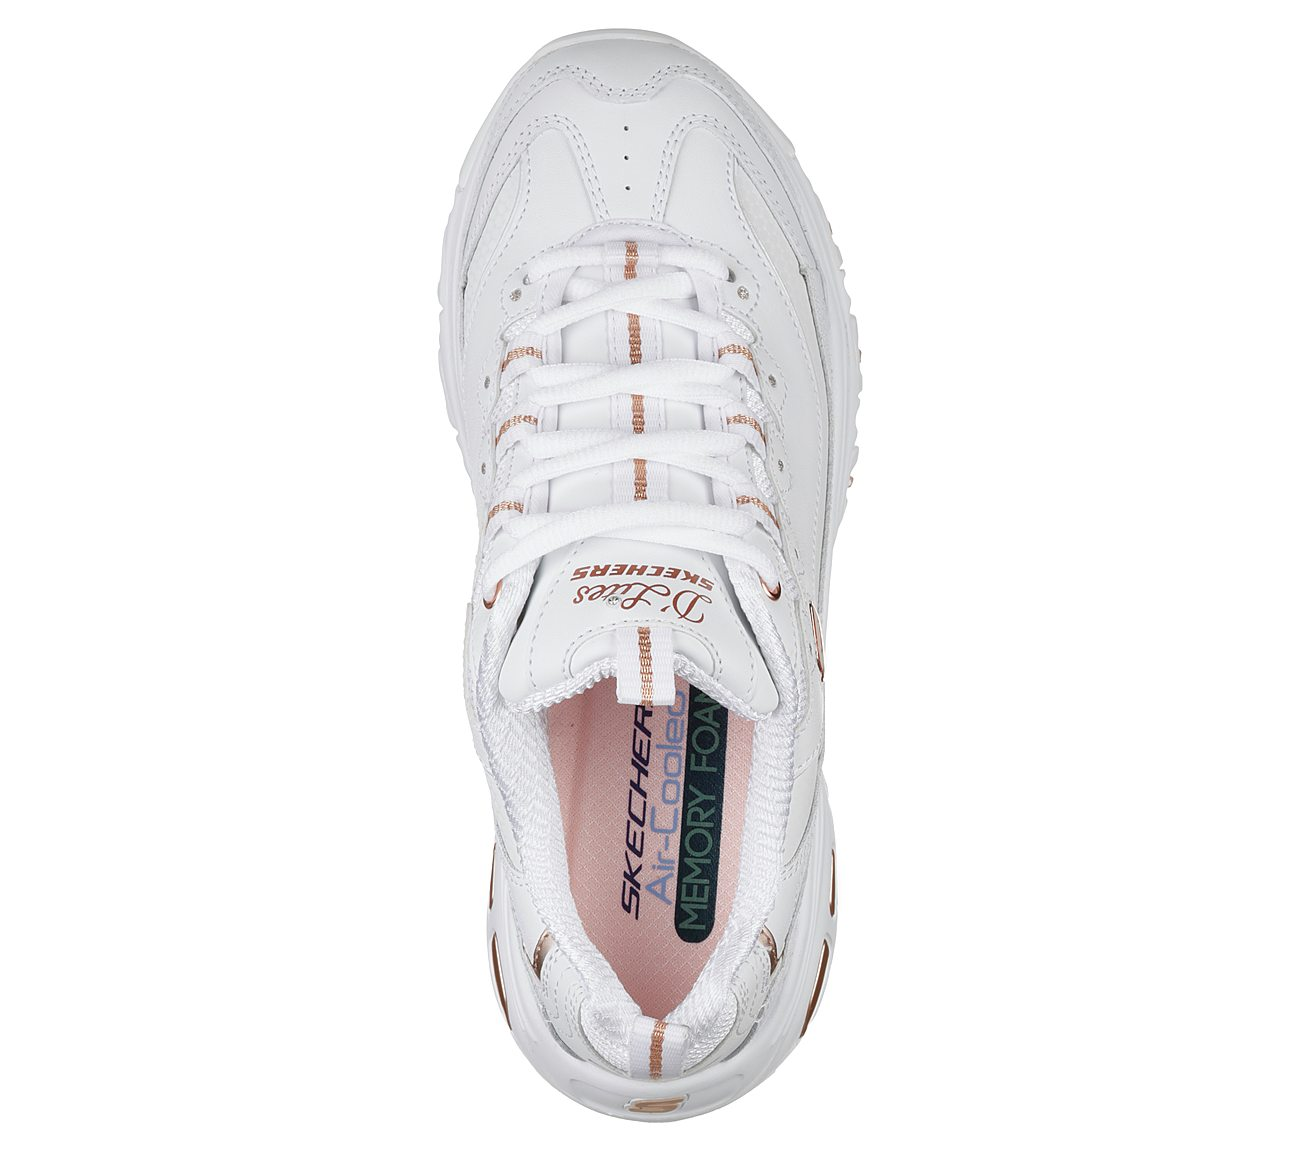 69fc212679 Buy SKECHERS D lites - Fresh Start D Lites Shoes only  70.00